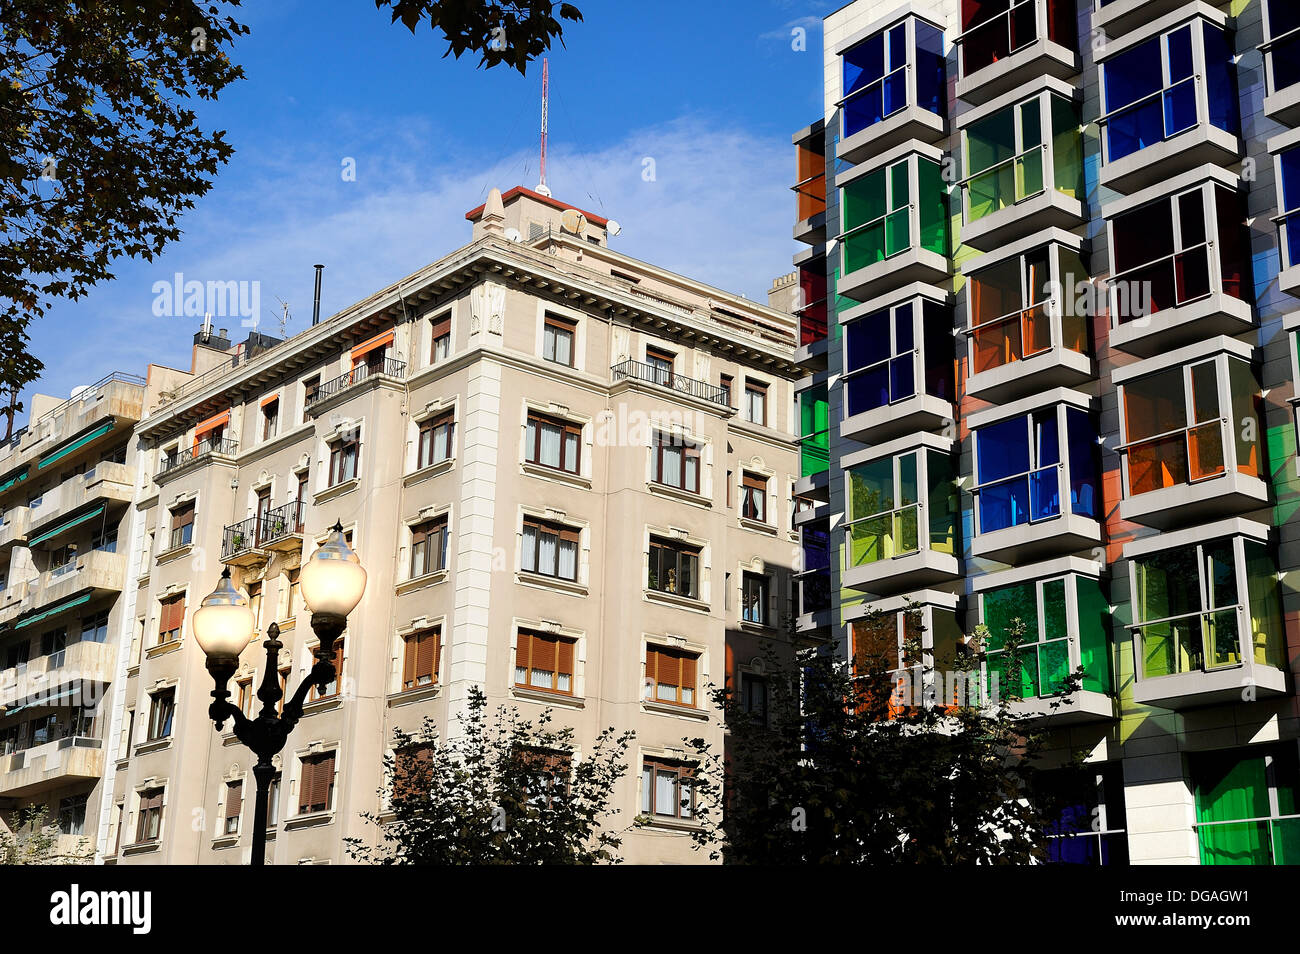 Art Deco façade of the Hotel Hesperia Bilbao crystals with different colored windows as opposed to a classical building Stock Photo